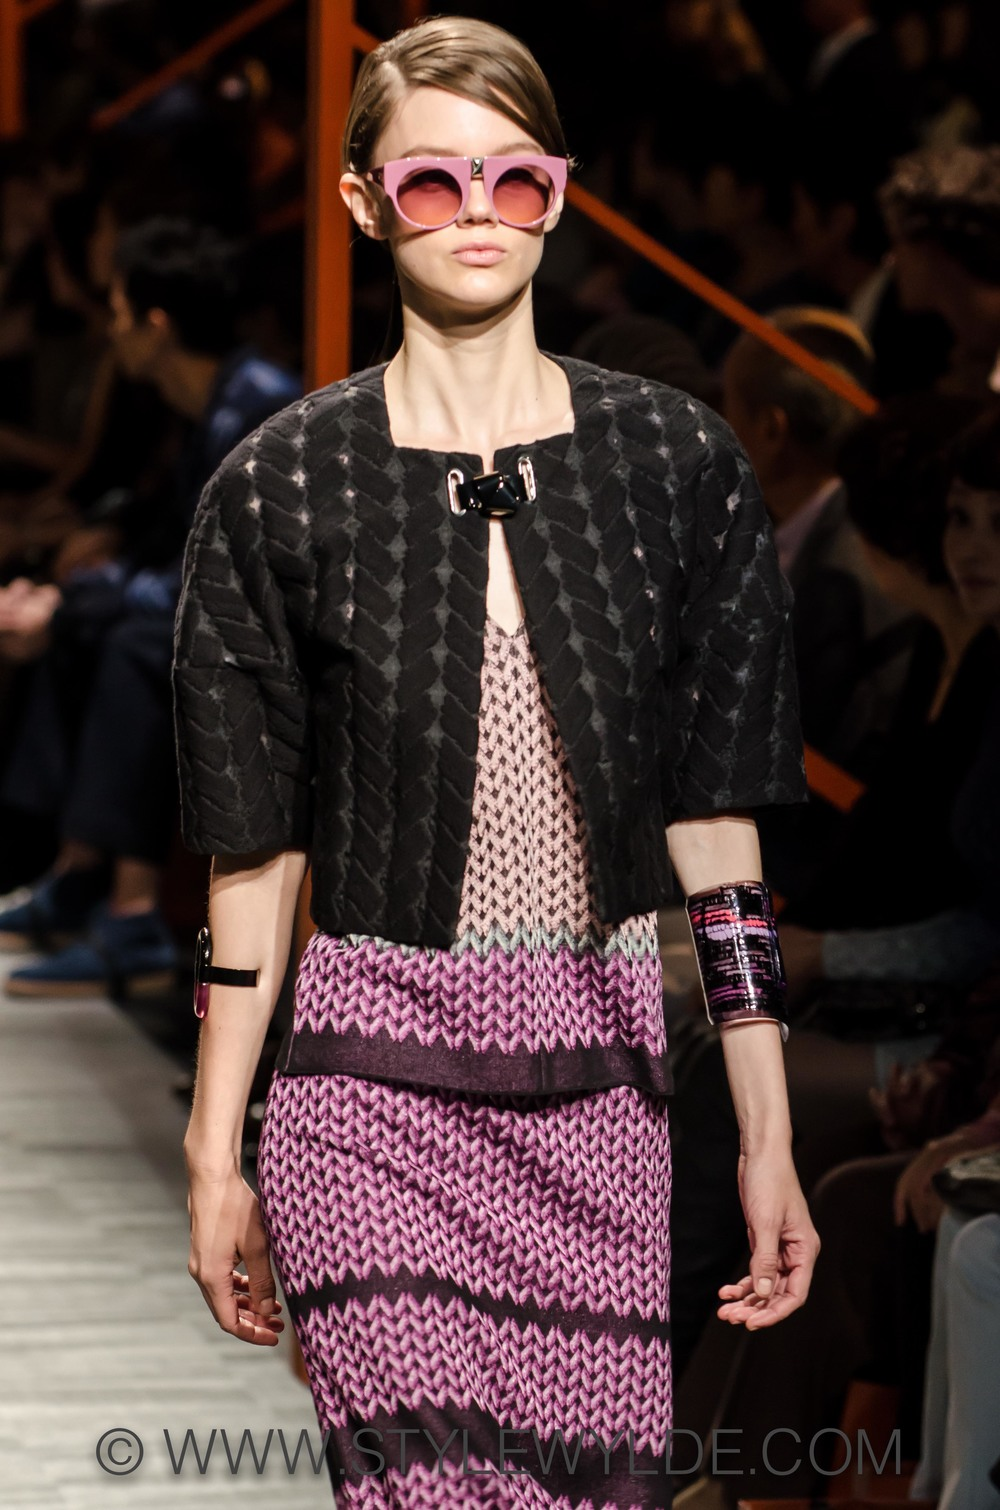 STYLEWYLDE_Missoni_SS2014 (1 of 1)-15.jpg